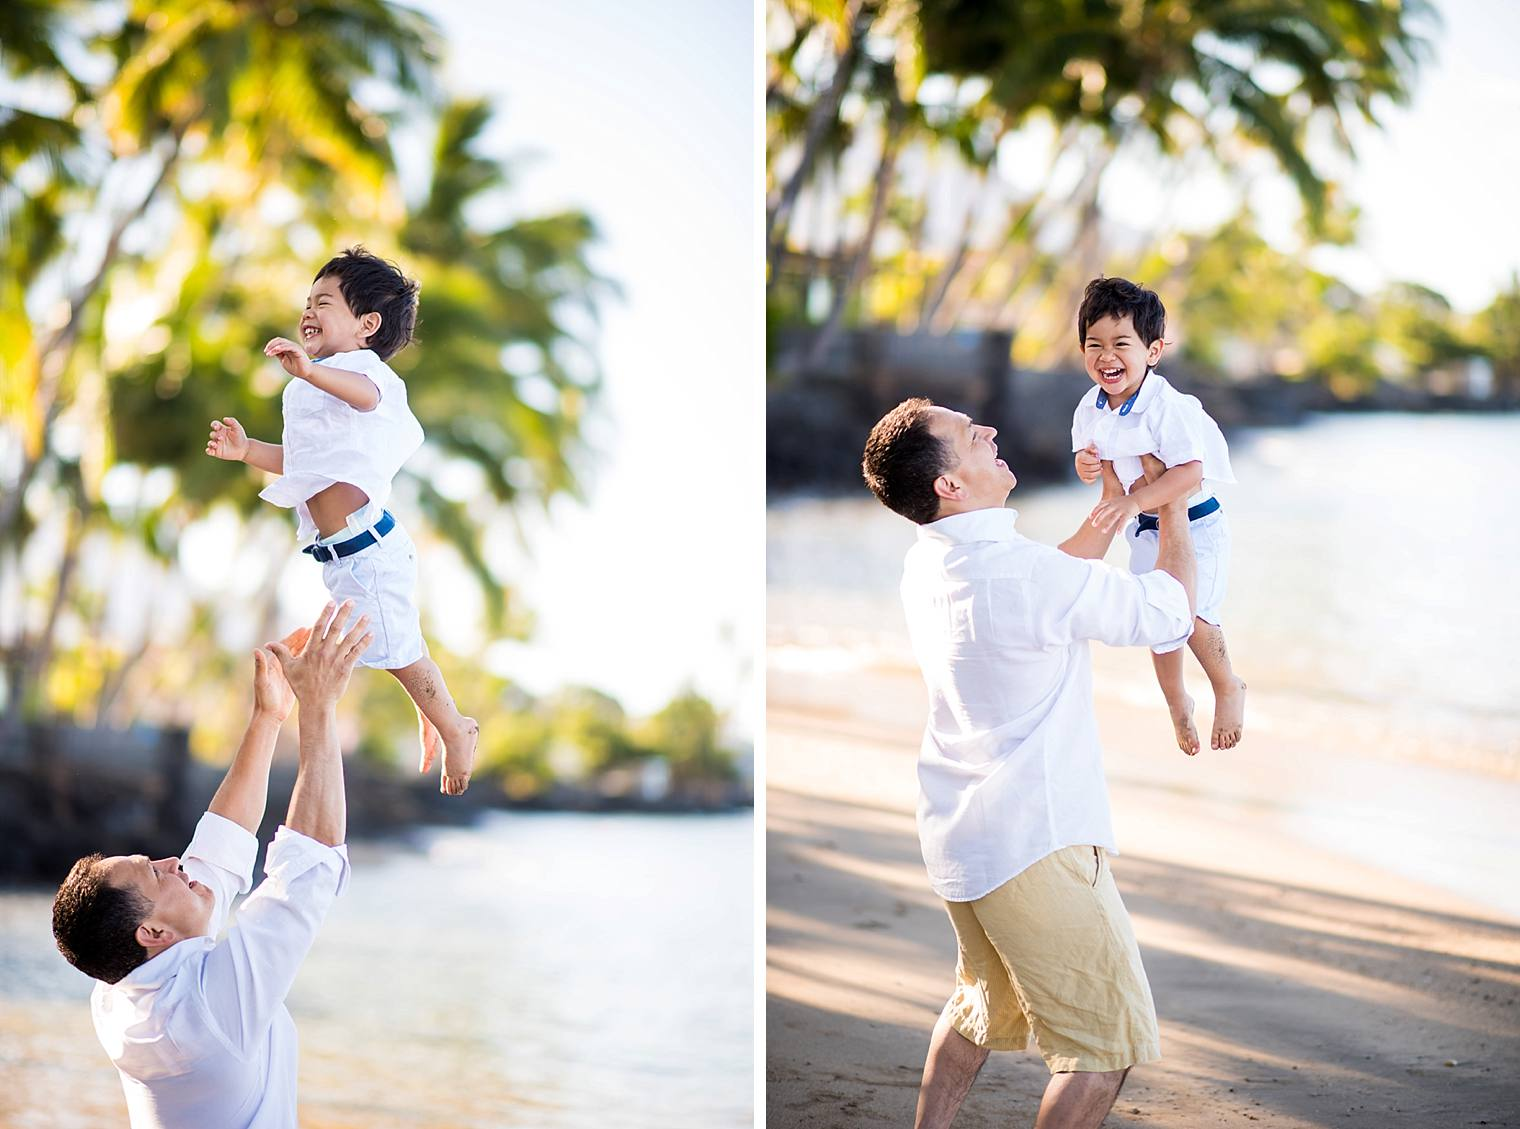 father throwing son in the air